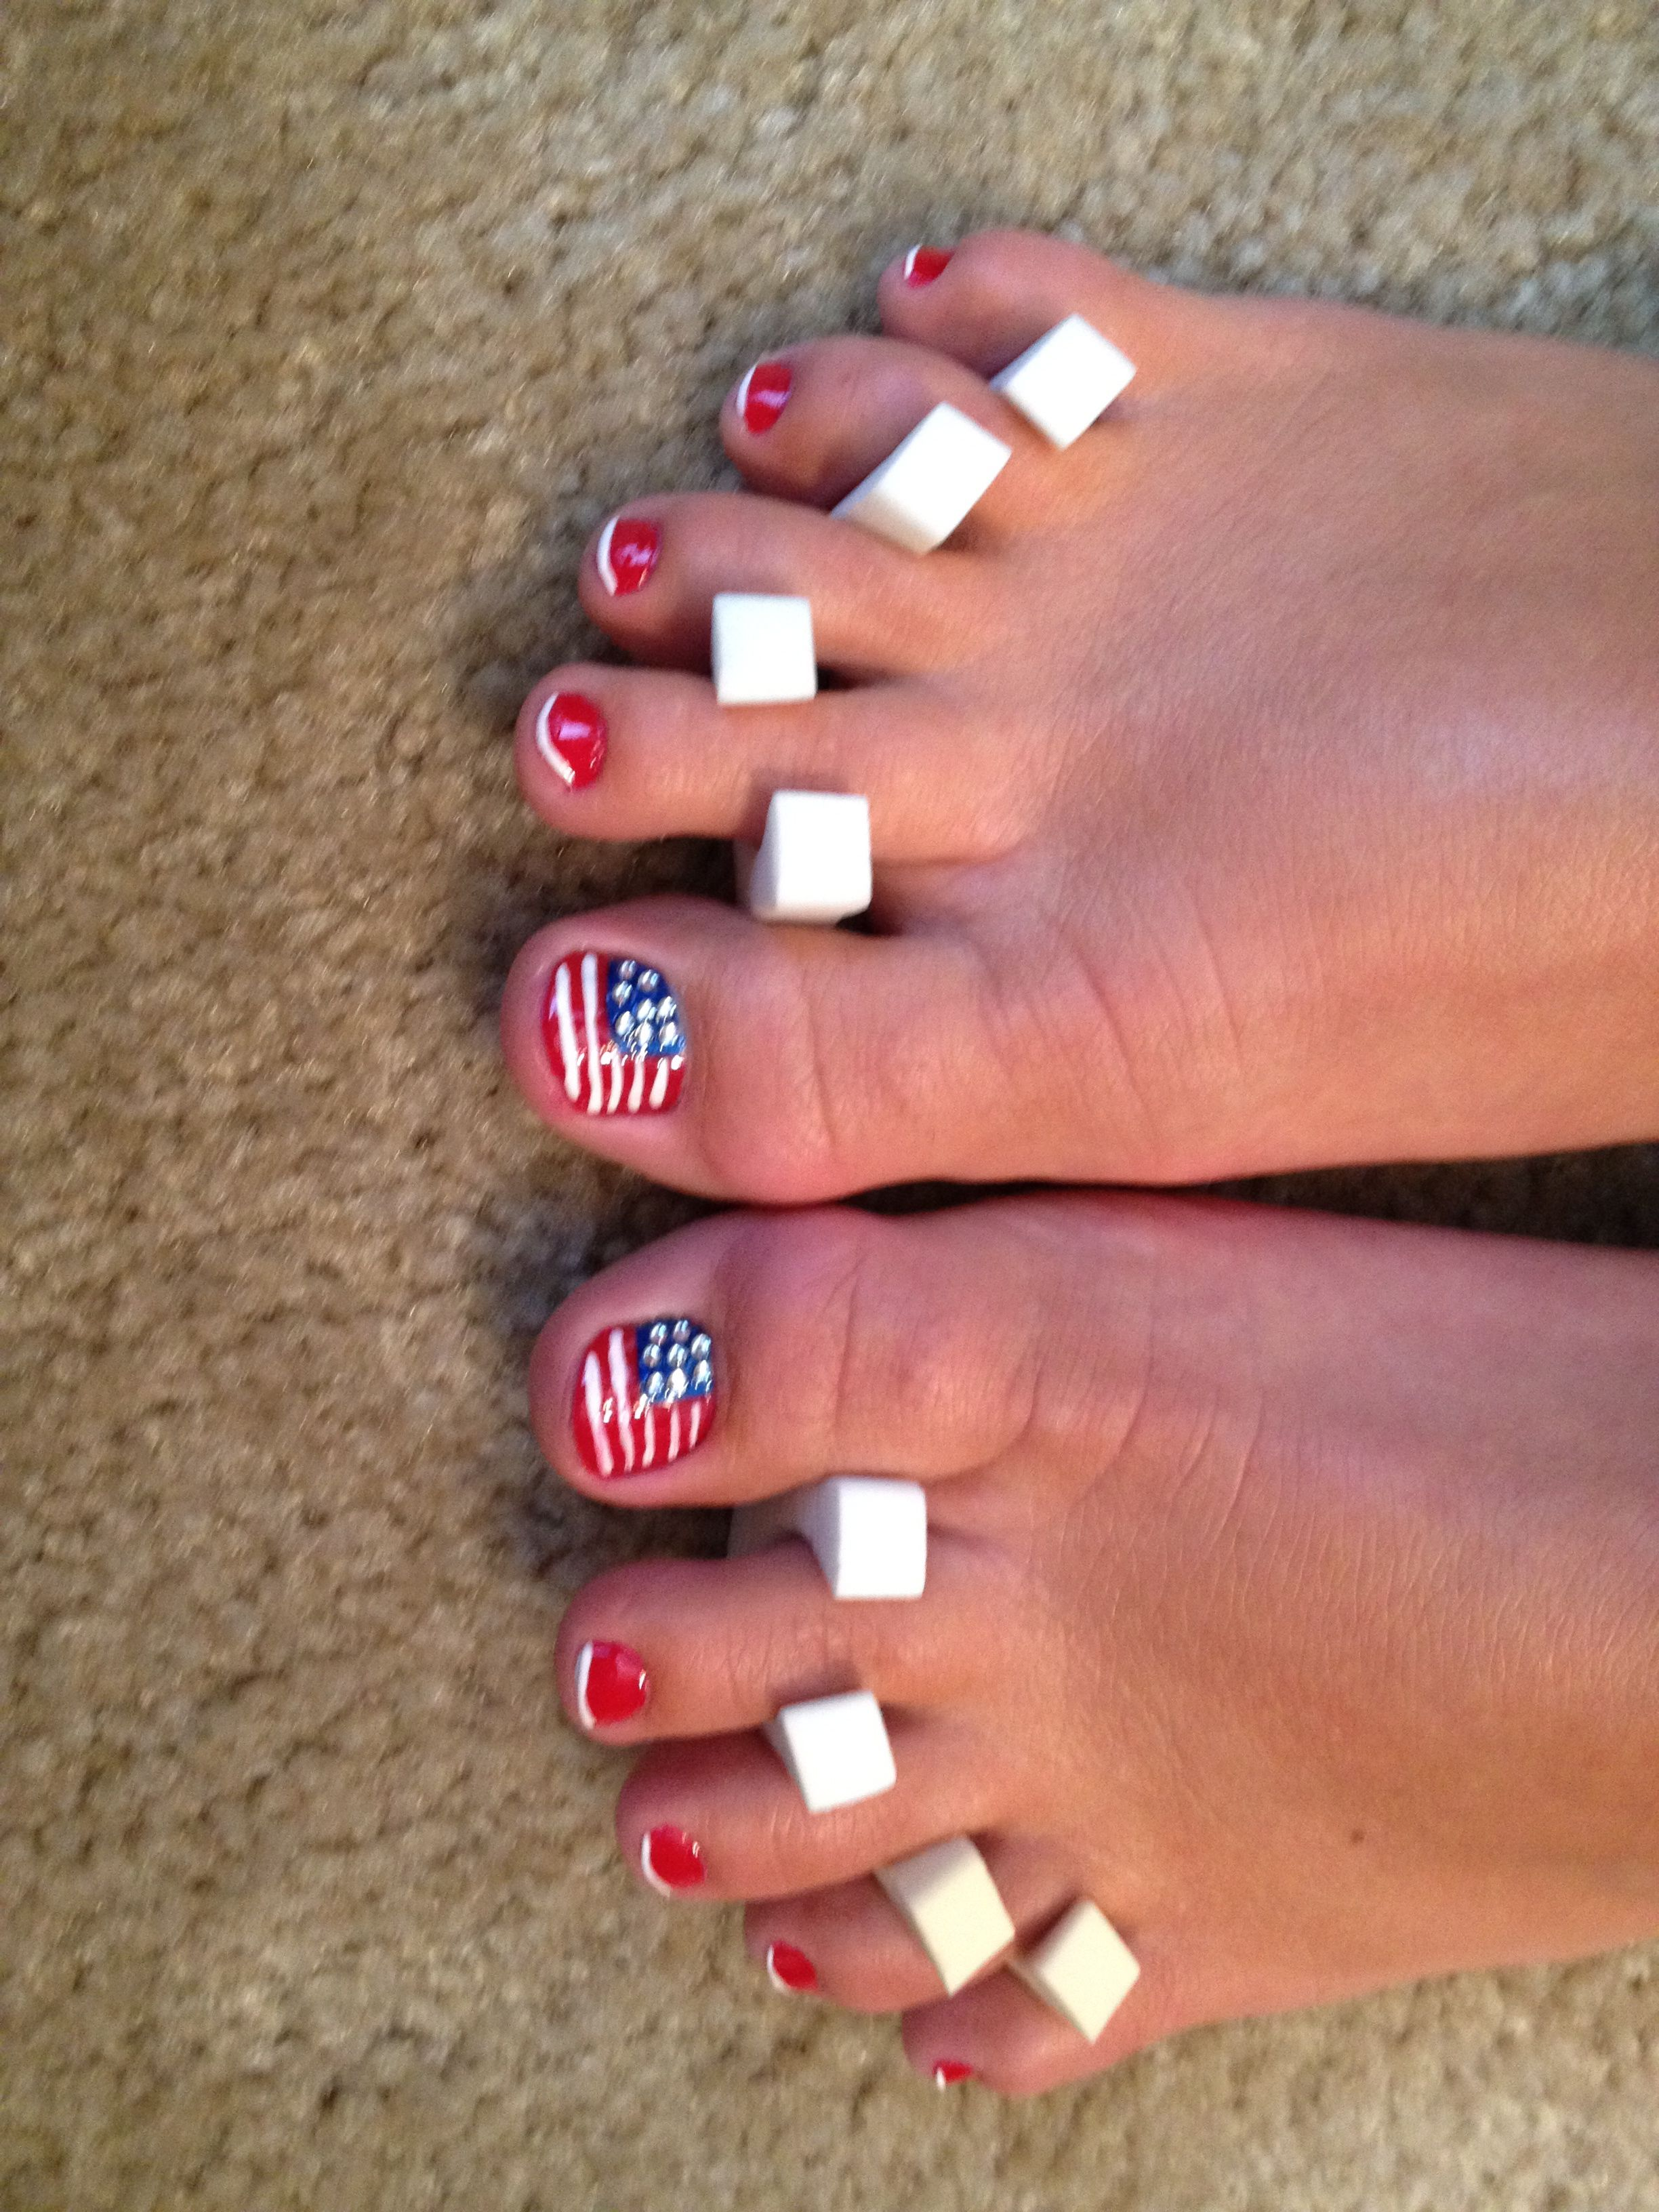 American Flag Pedicure For The 4th Of July Pedicure Nail Designs Painted Toe Nails Pedicure Nail Art